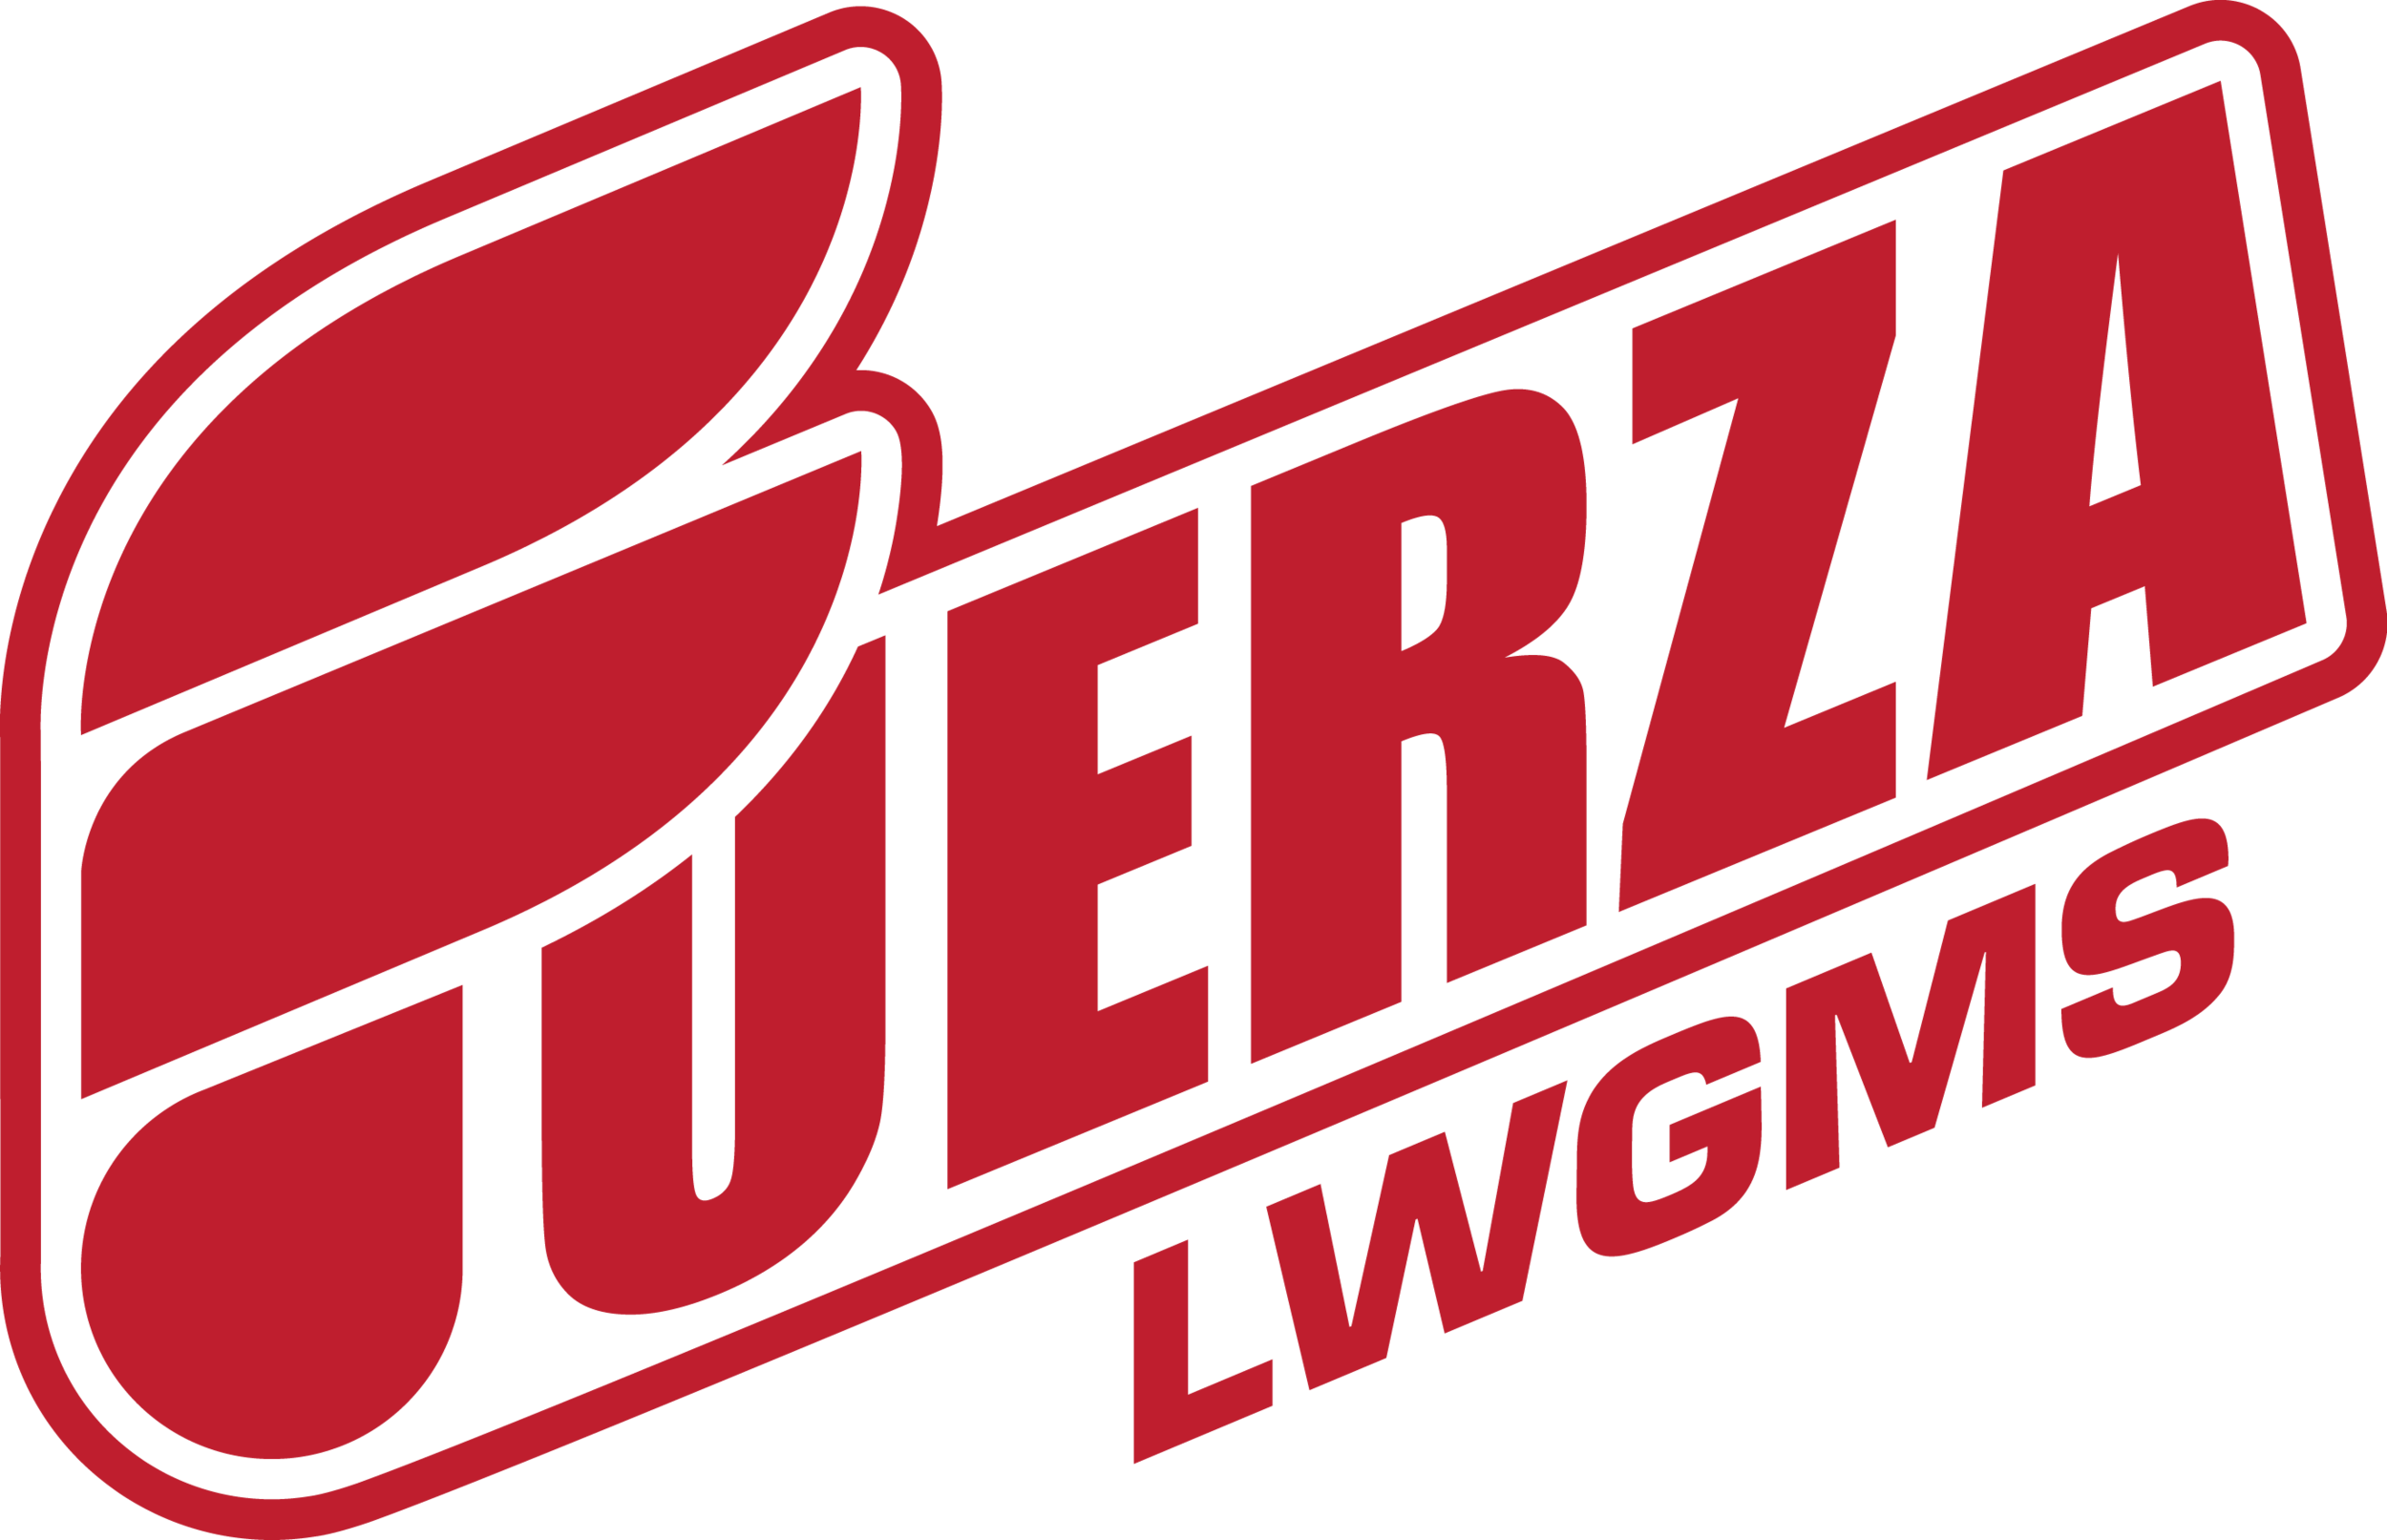 LWGMS Fuerza Sports Logo.png